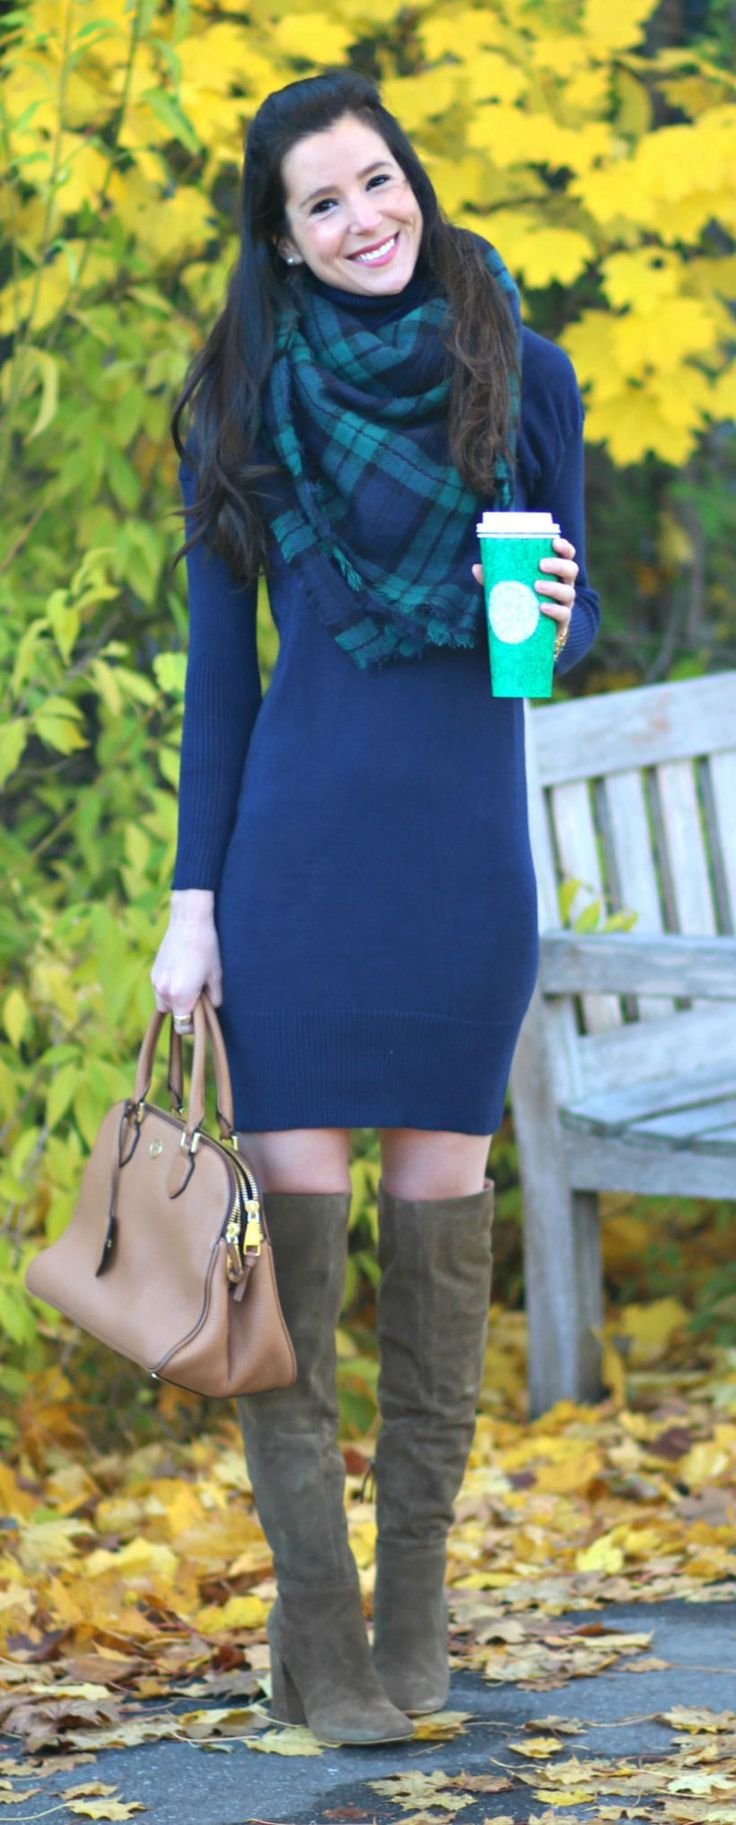 Nice 60 Cute Fall Outfits Ideas 2017 from https://fashionetter.com/2017/09/13/60-cute-fall-outfits-ideas-2017/